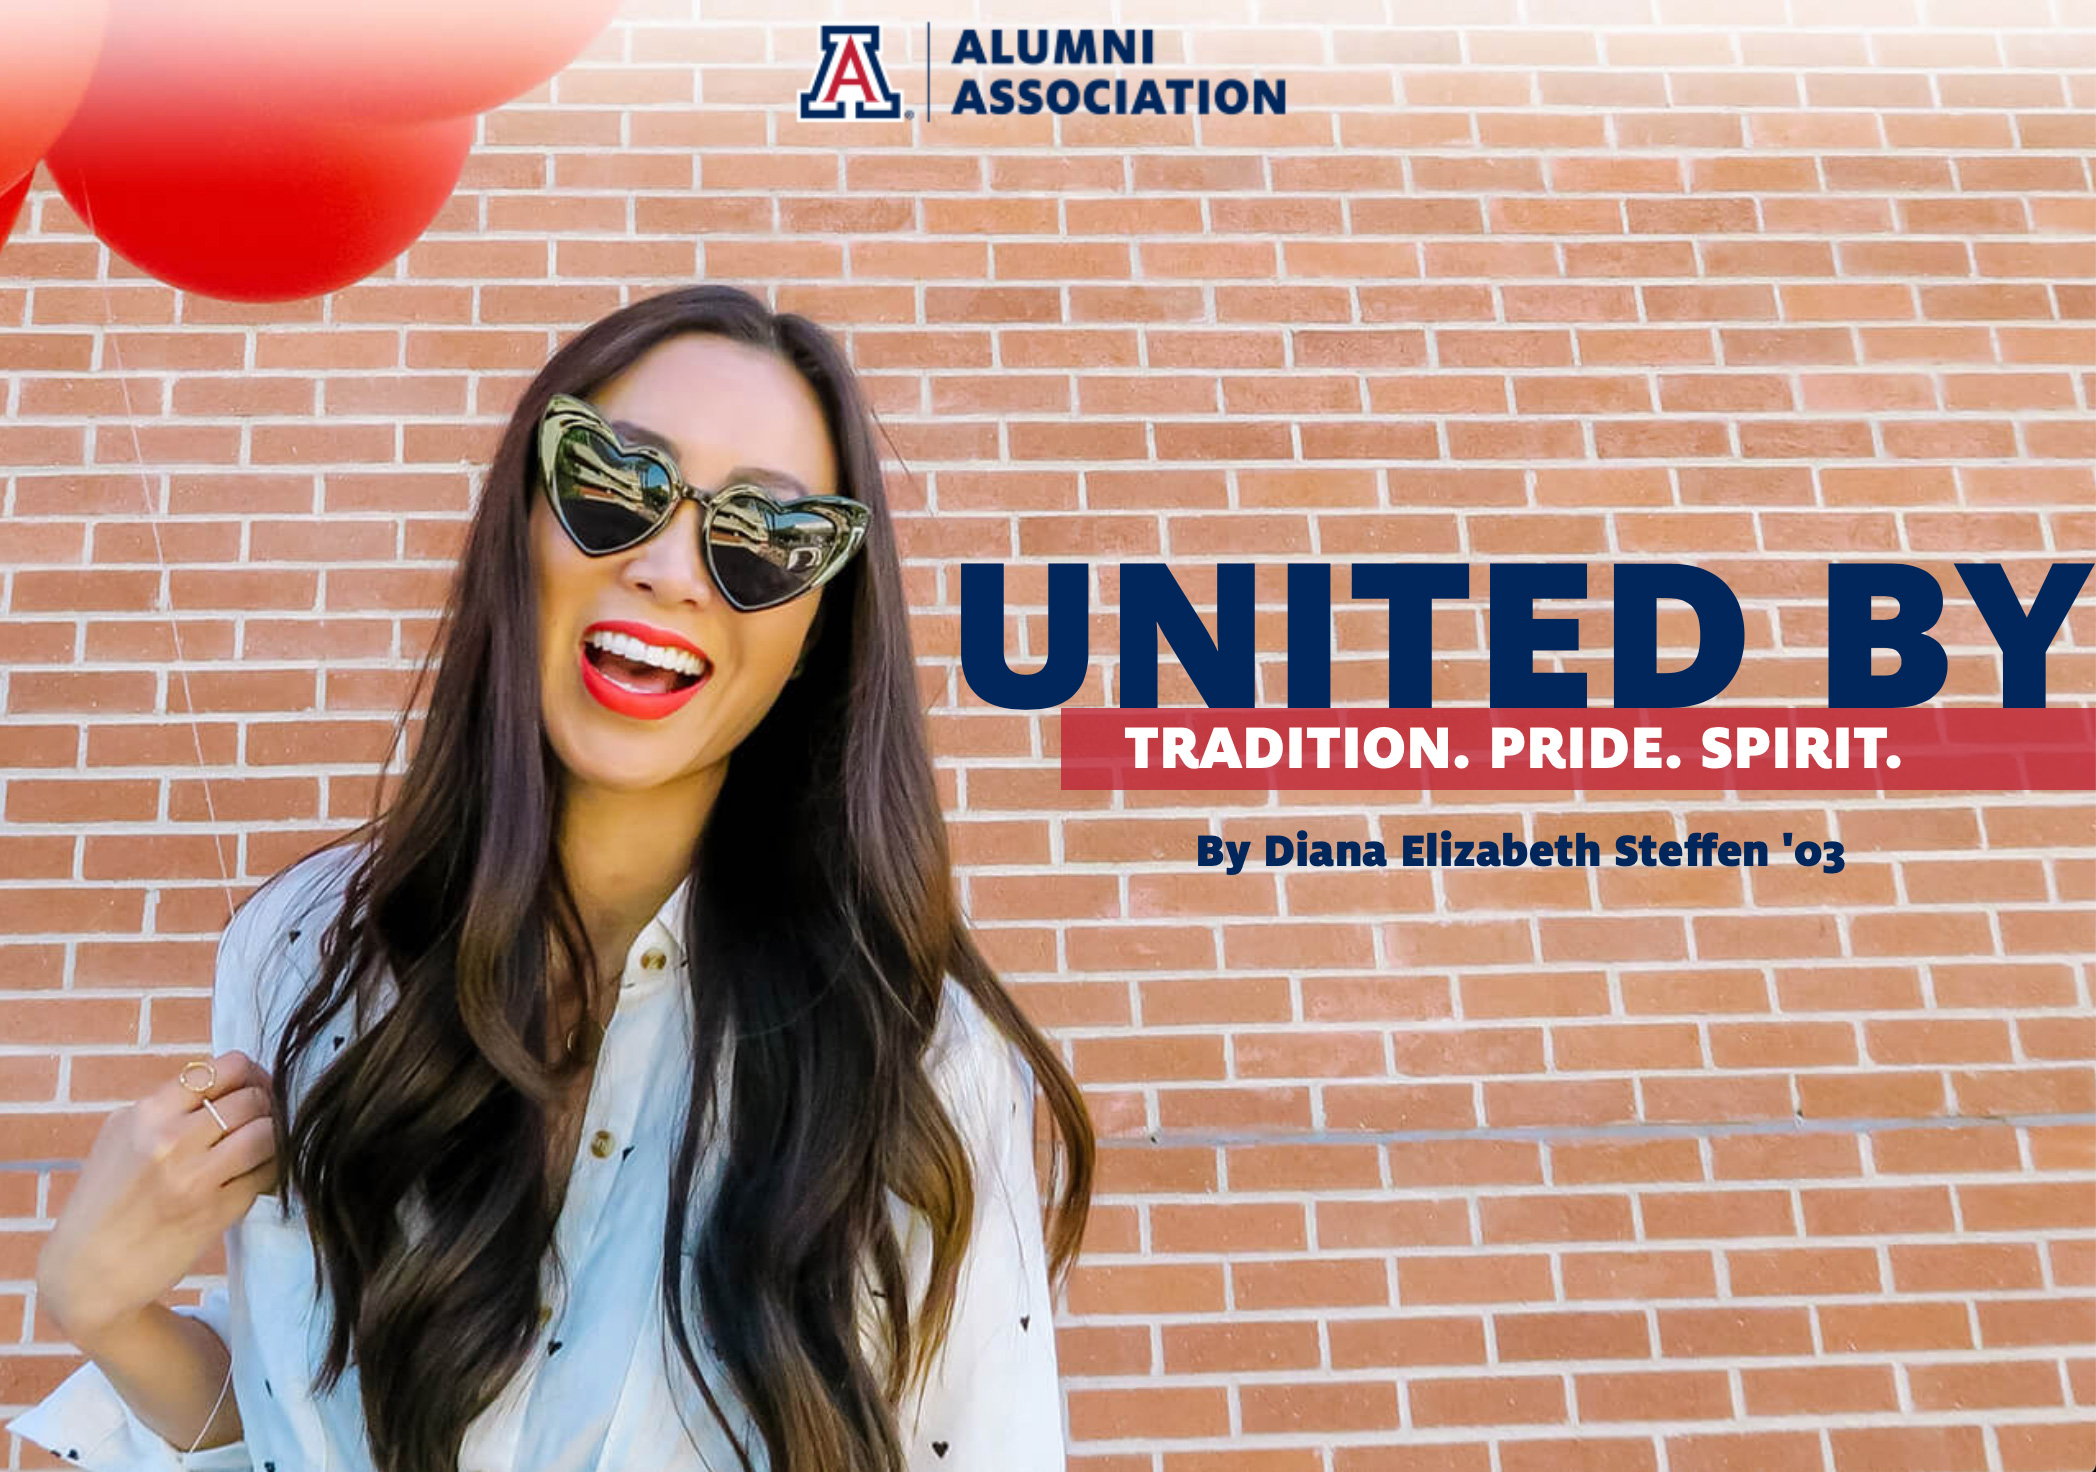 university of arizona blogger Diana Elizabeth covers homecoming featured on uaaa site